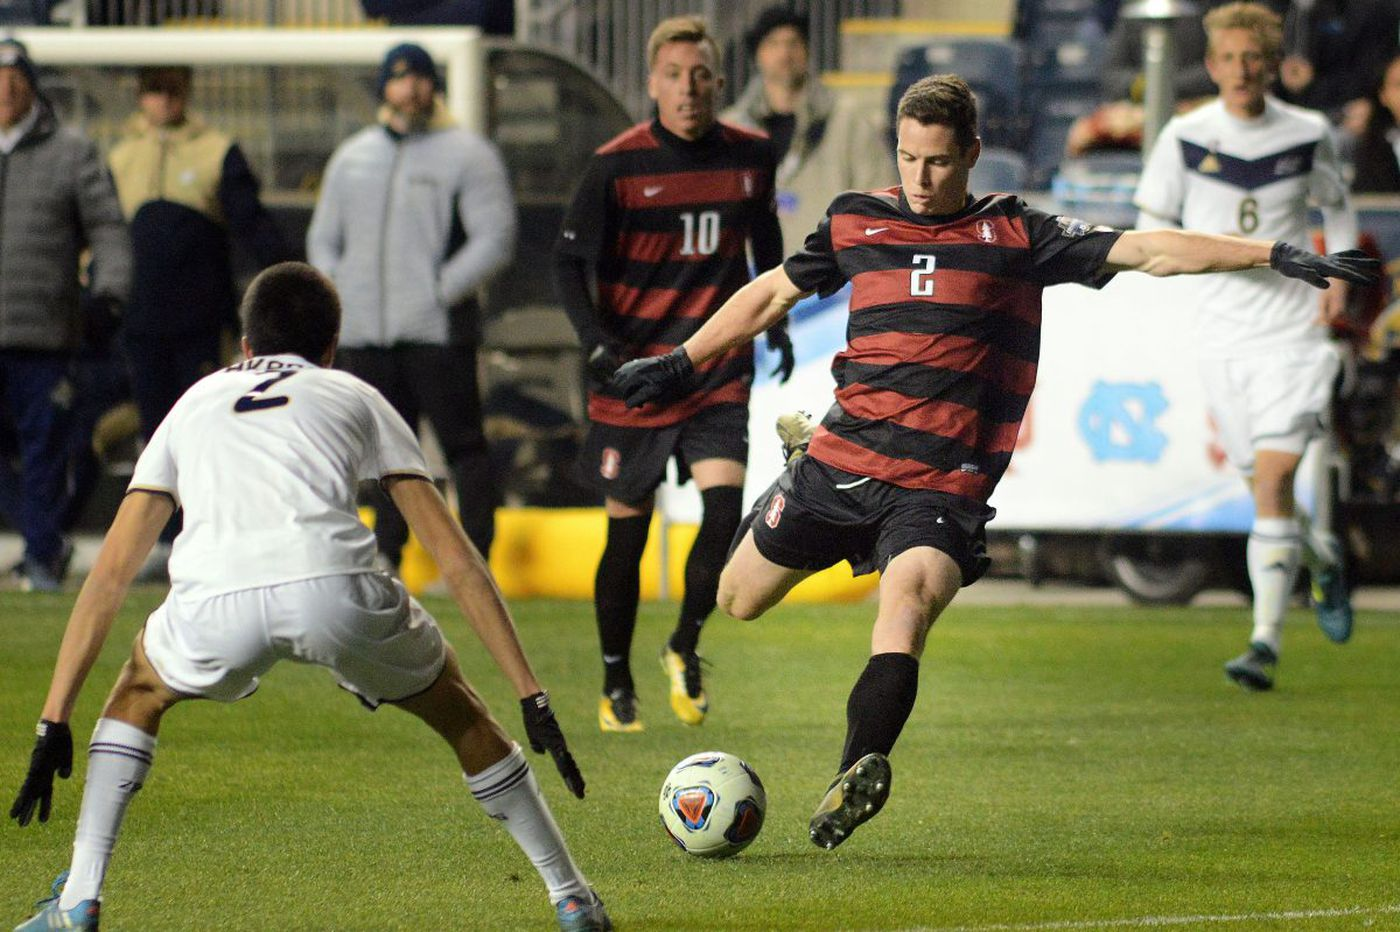 Stanford, Indiana advance to NCAA men's soccer title game